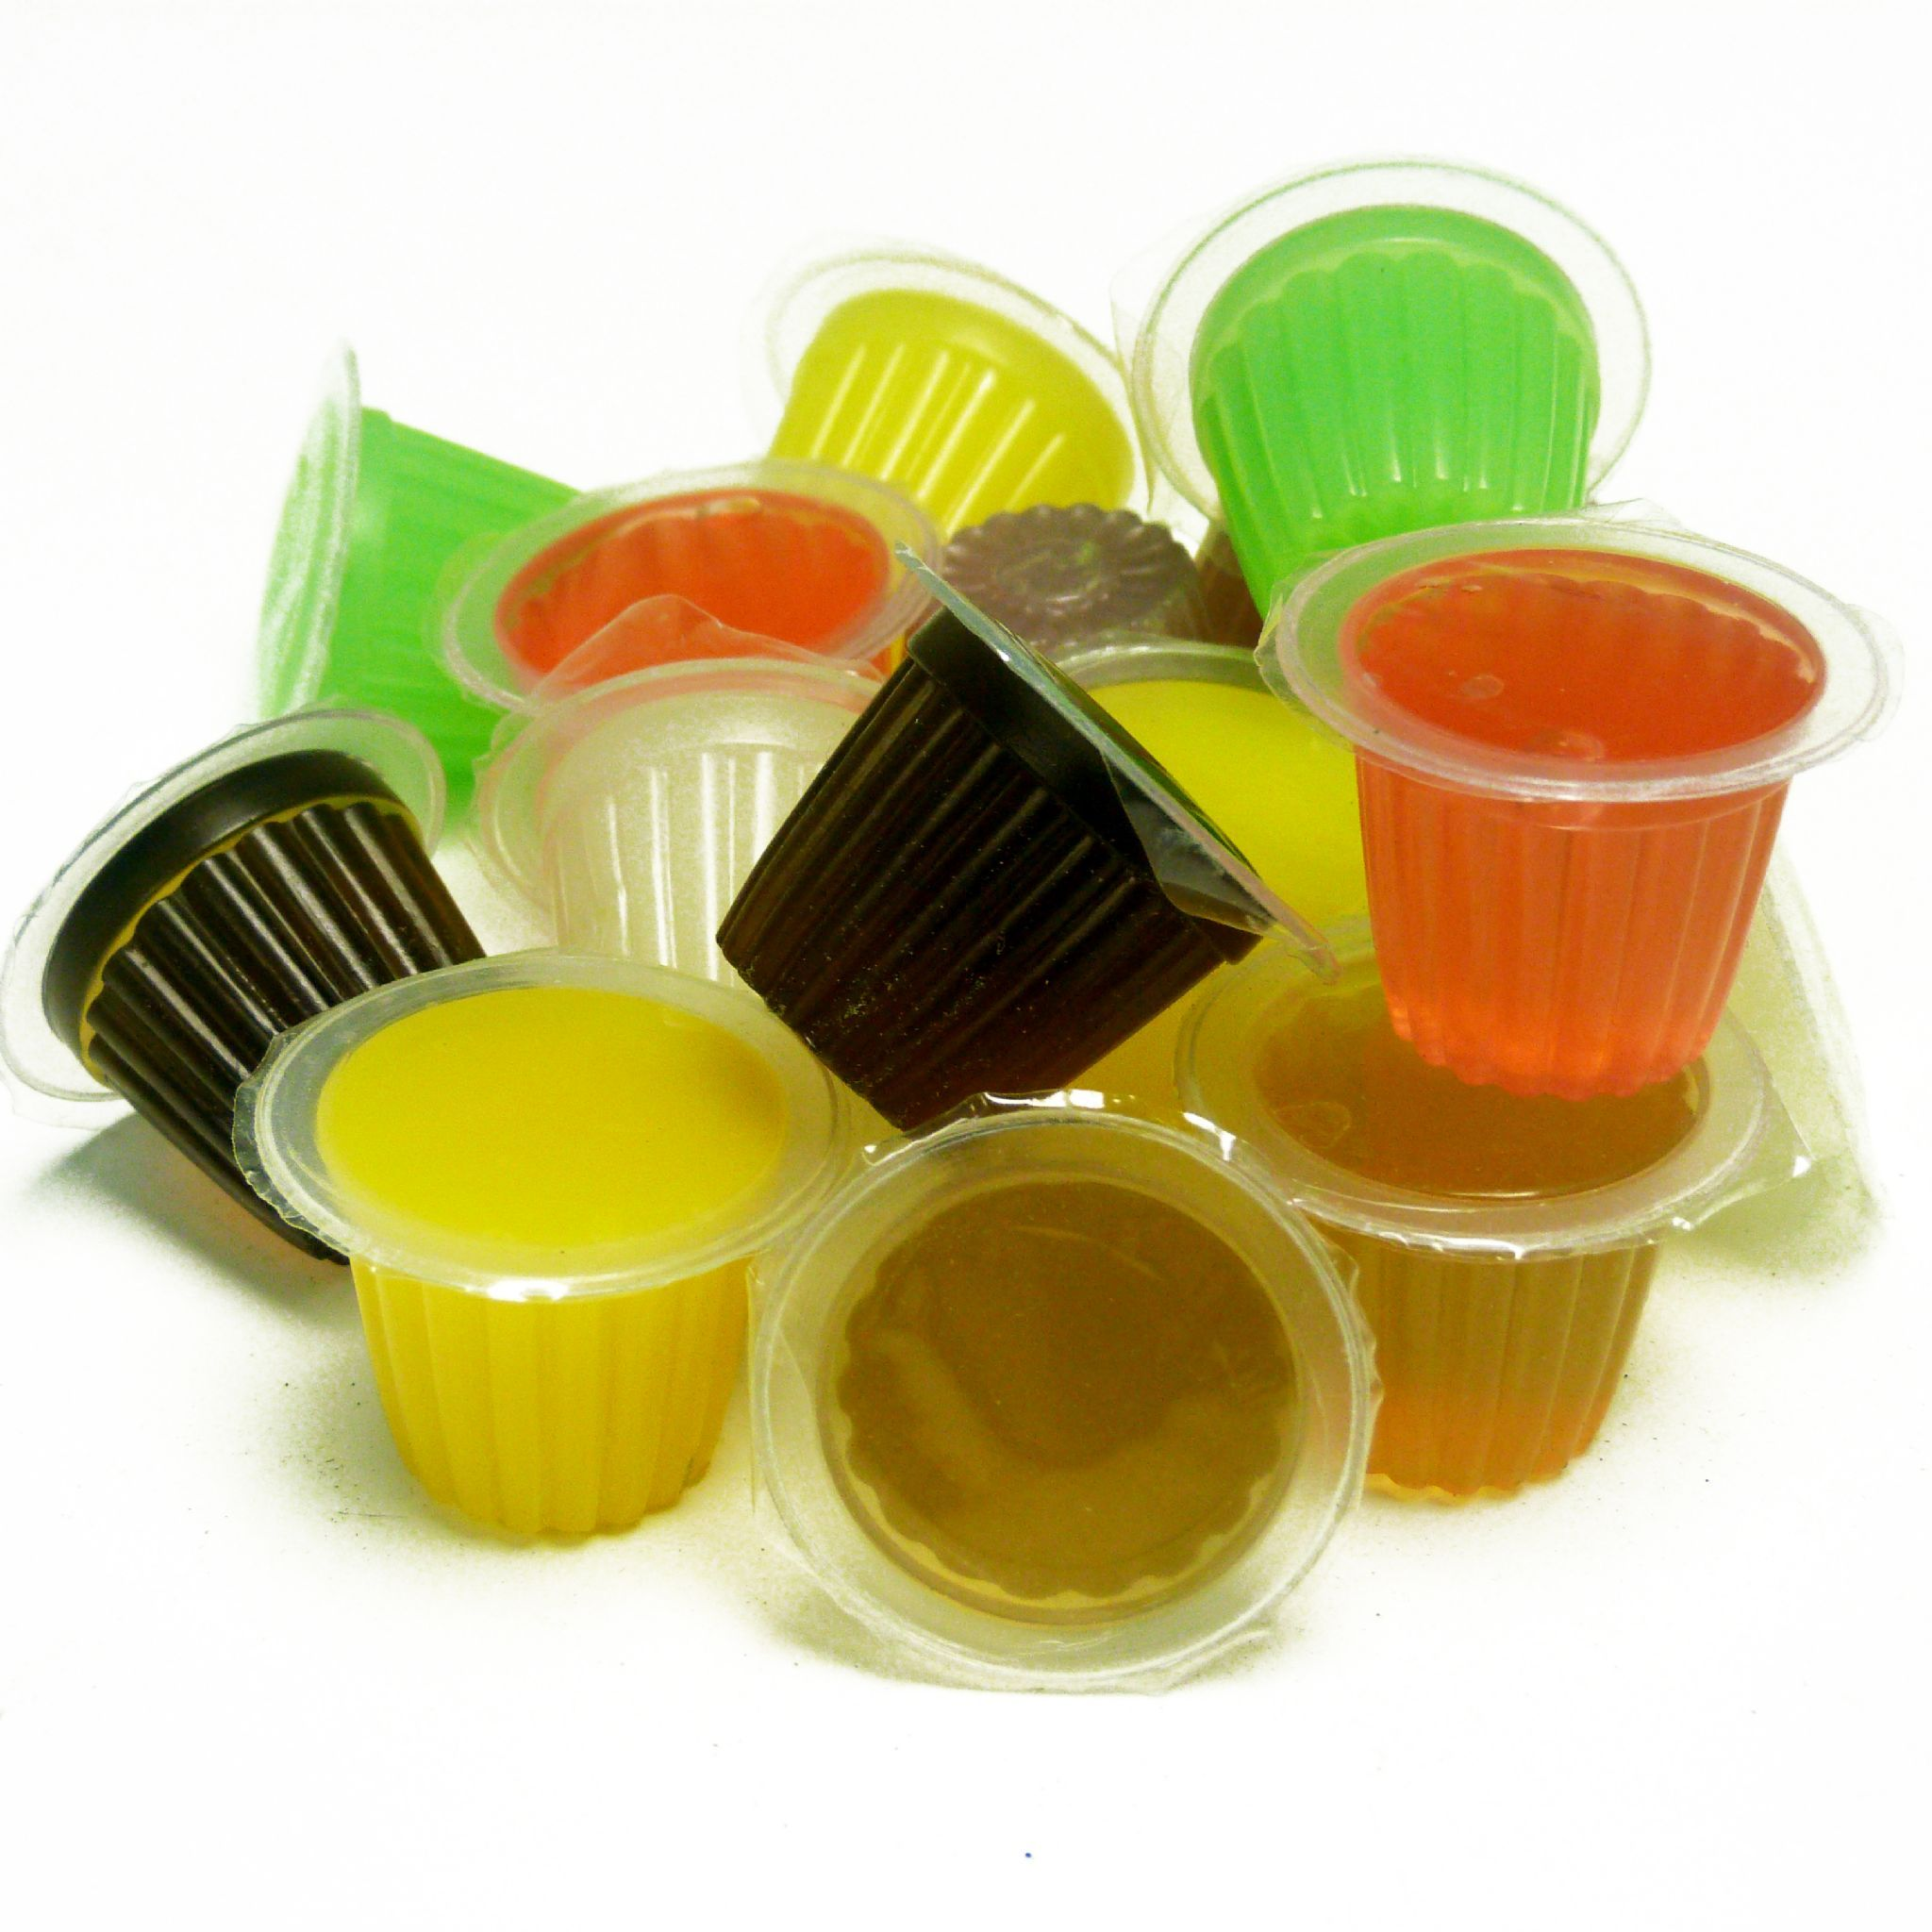 jelly-pots-assorted.jpg